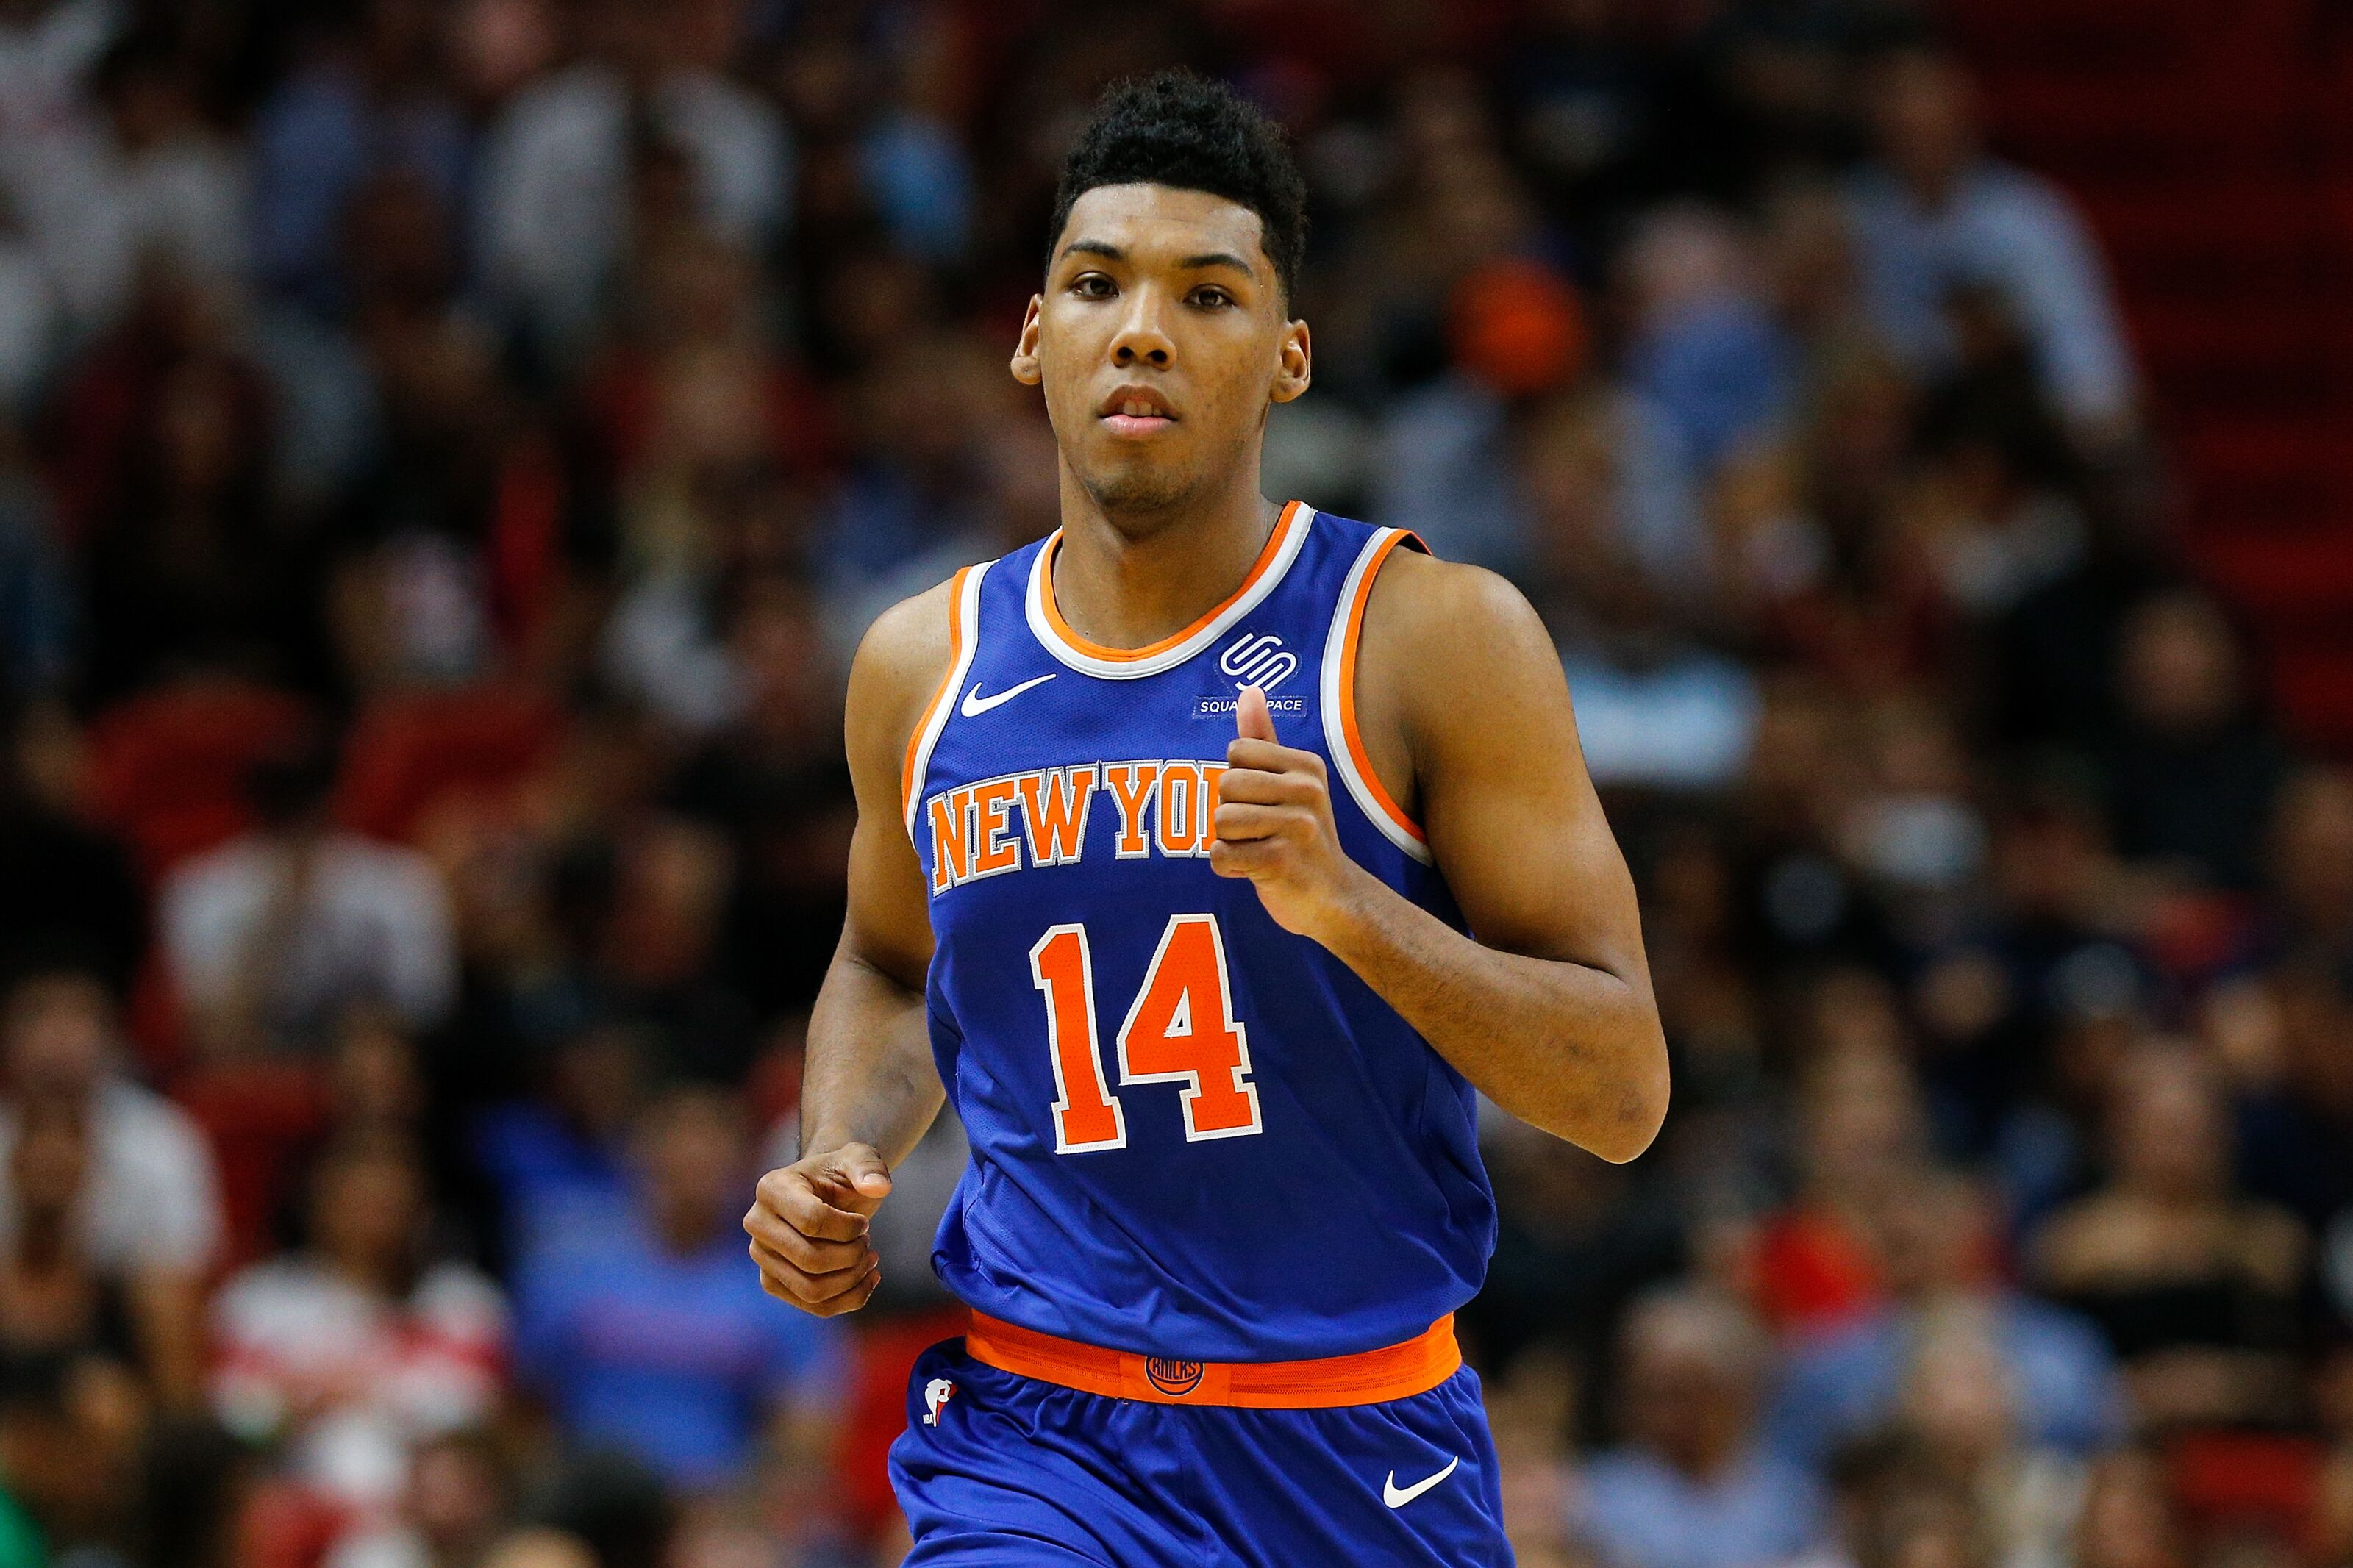 timeless design 0679d 569cc New York Knicks: Allonzo Trier looks like an absolute steal ...